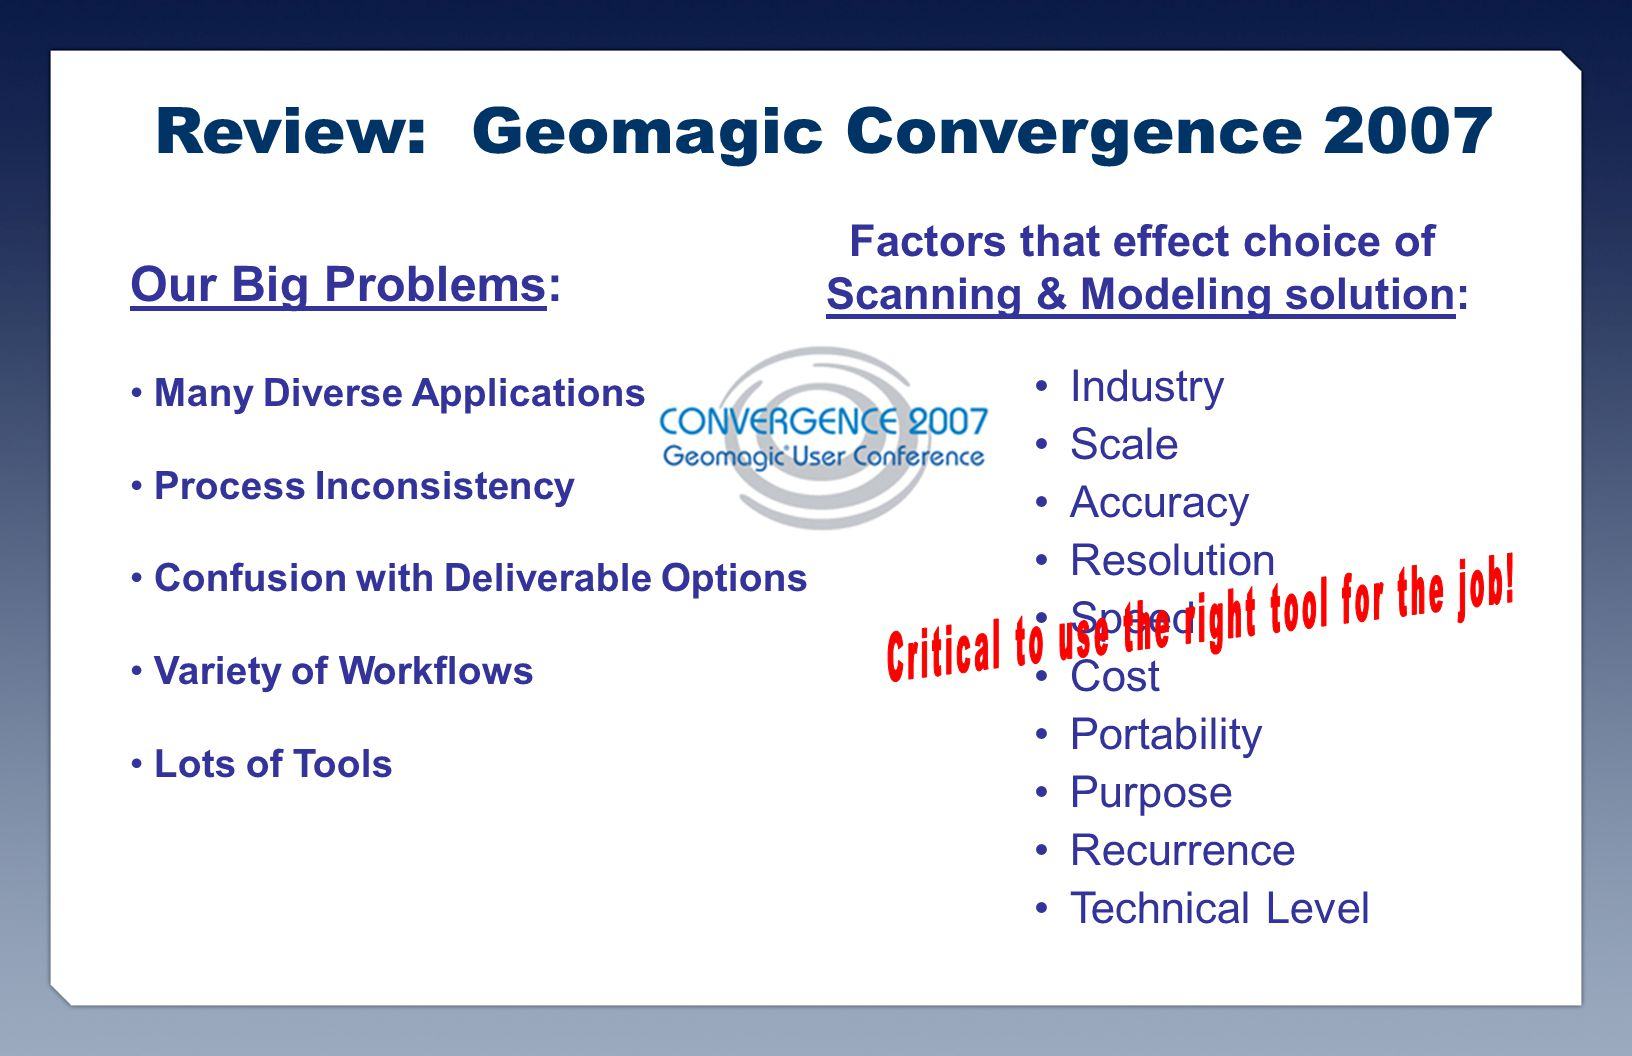 Review: Geomagic Convergence 2007 Our Big Problems: Many Diverse Applications Process Inconsistency Confusion with Deliverable Options Variety of Workflows Lots of Tools Factors that effect choice of Scanning & Modeling solution: Industry Scale Accuracy Resolution Speed Cost Portability Purpose Recurrence Technical Level